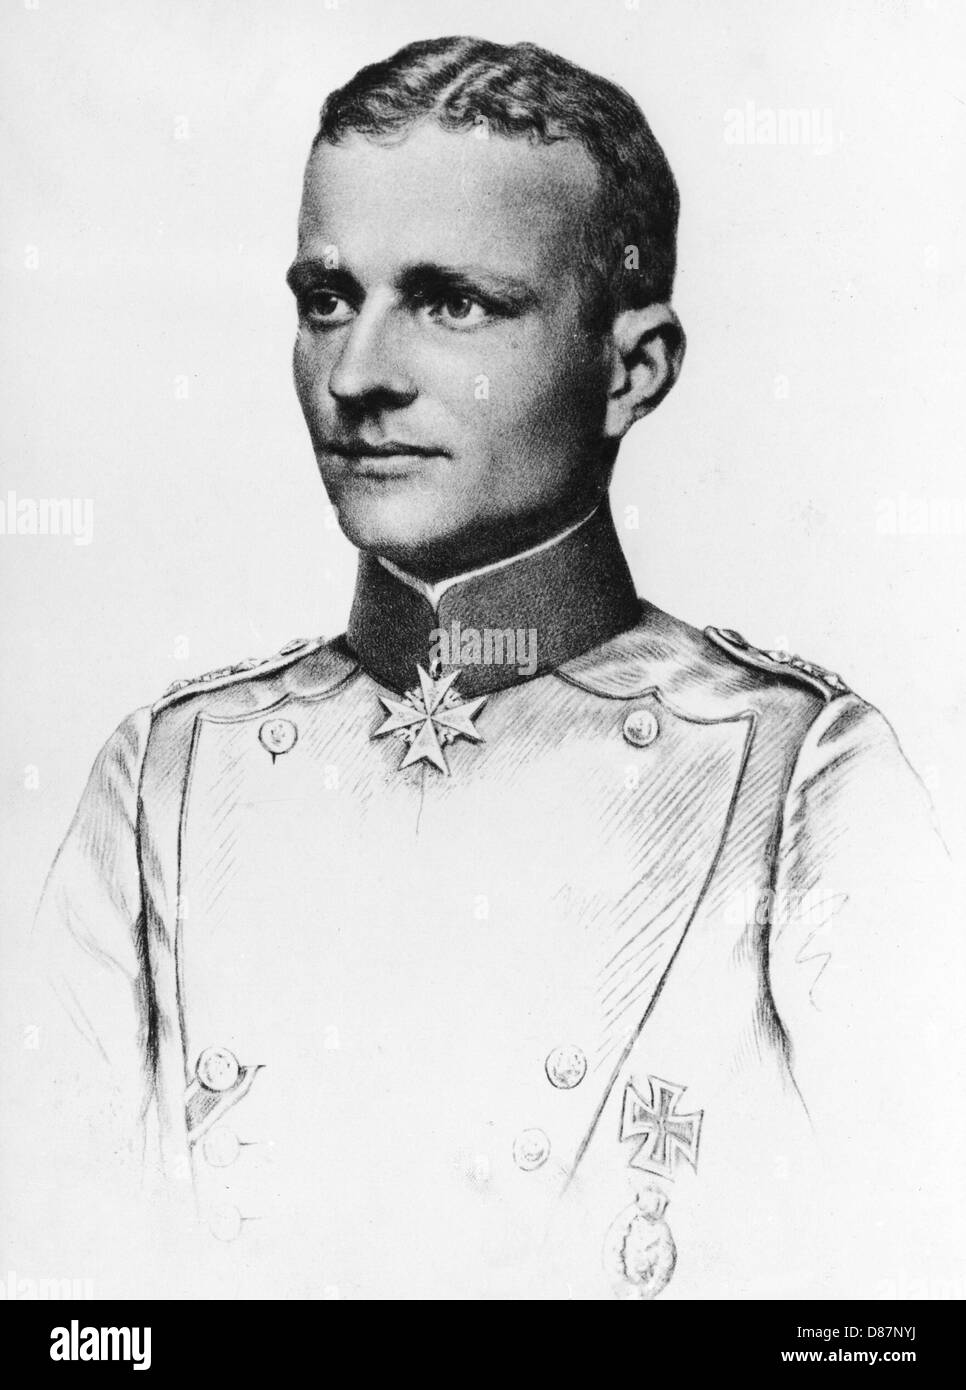 a biography of baron manfred von richtofen the red baron Manfred von richthofen (2 may 1892 - 21 april 1918), was also widely known as the legendary red baron, was a german fighter pilot with the imperial german army air service during world war i he is considered the ace-of-aces of that war, being officially credited with 80 air combat victories, more than any other pilot.